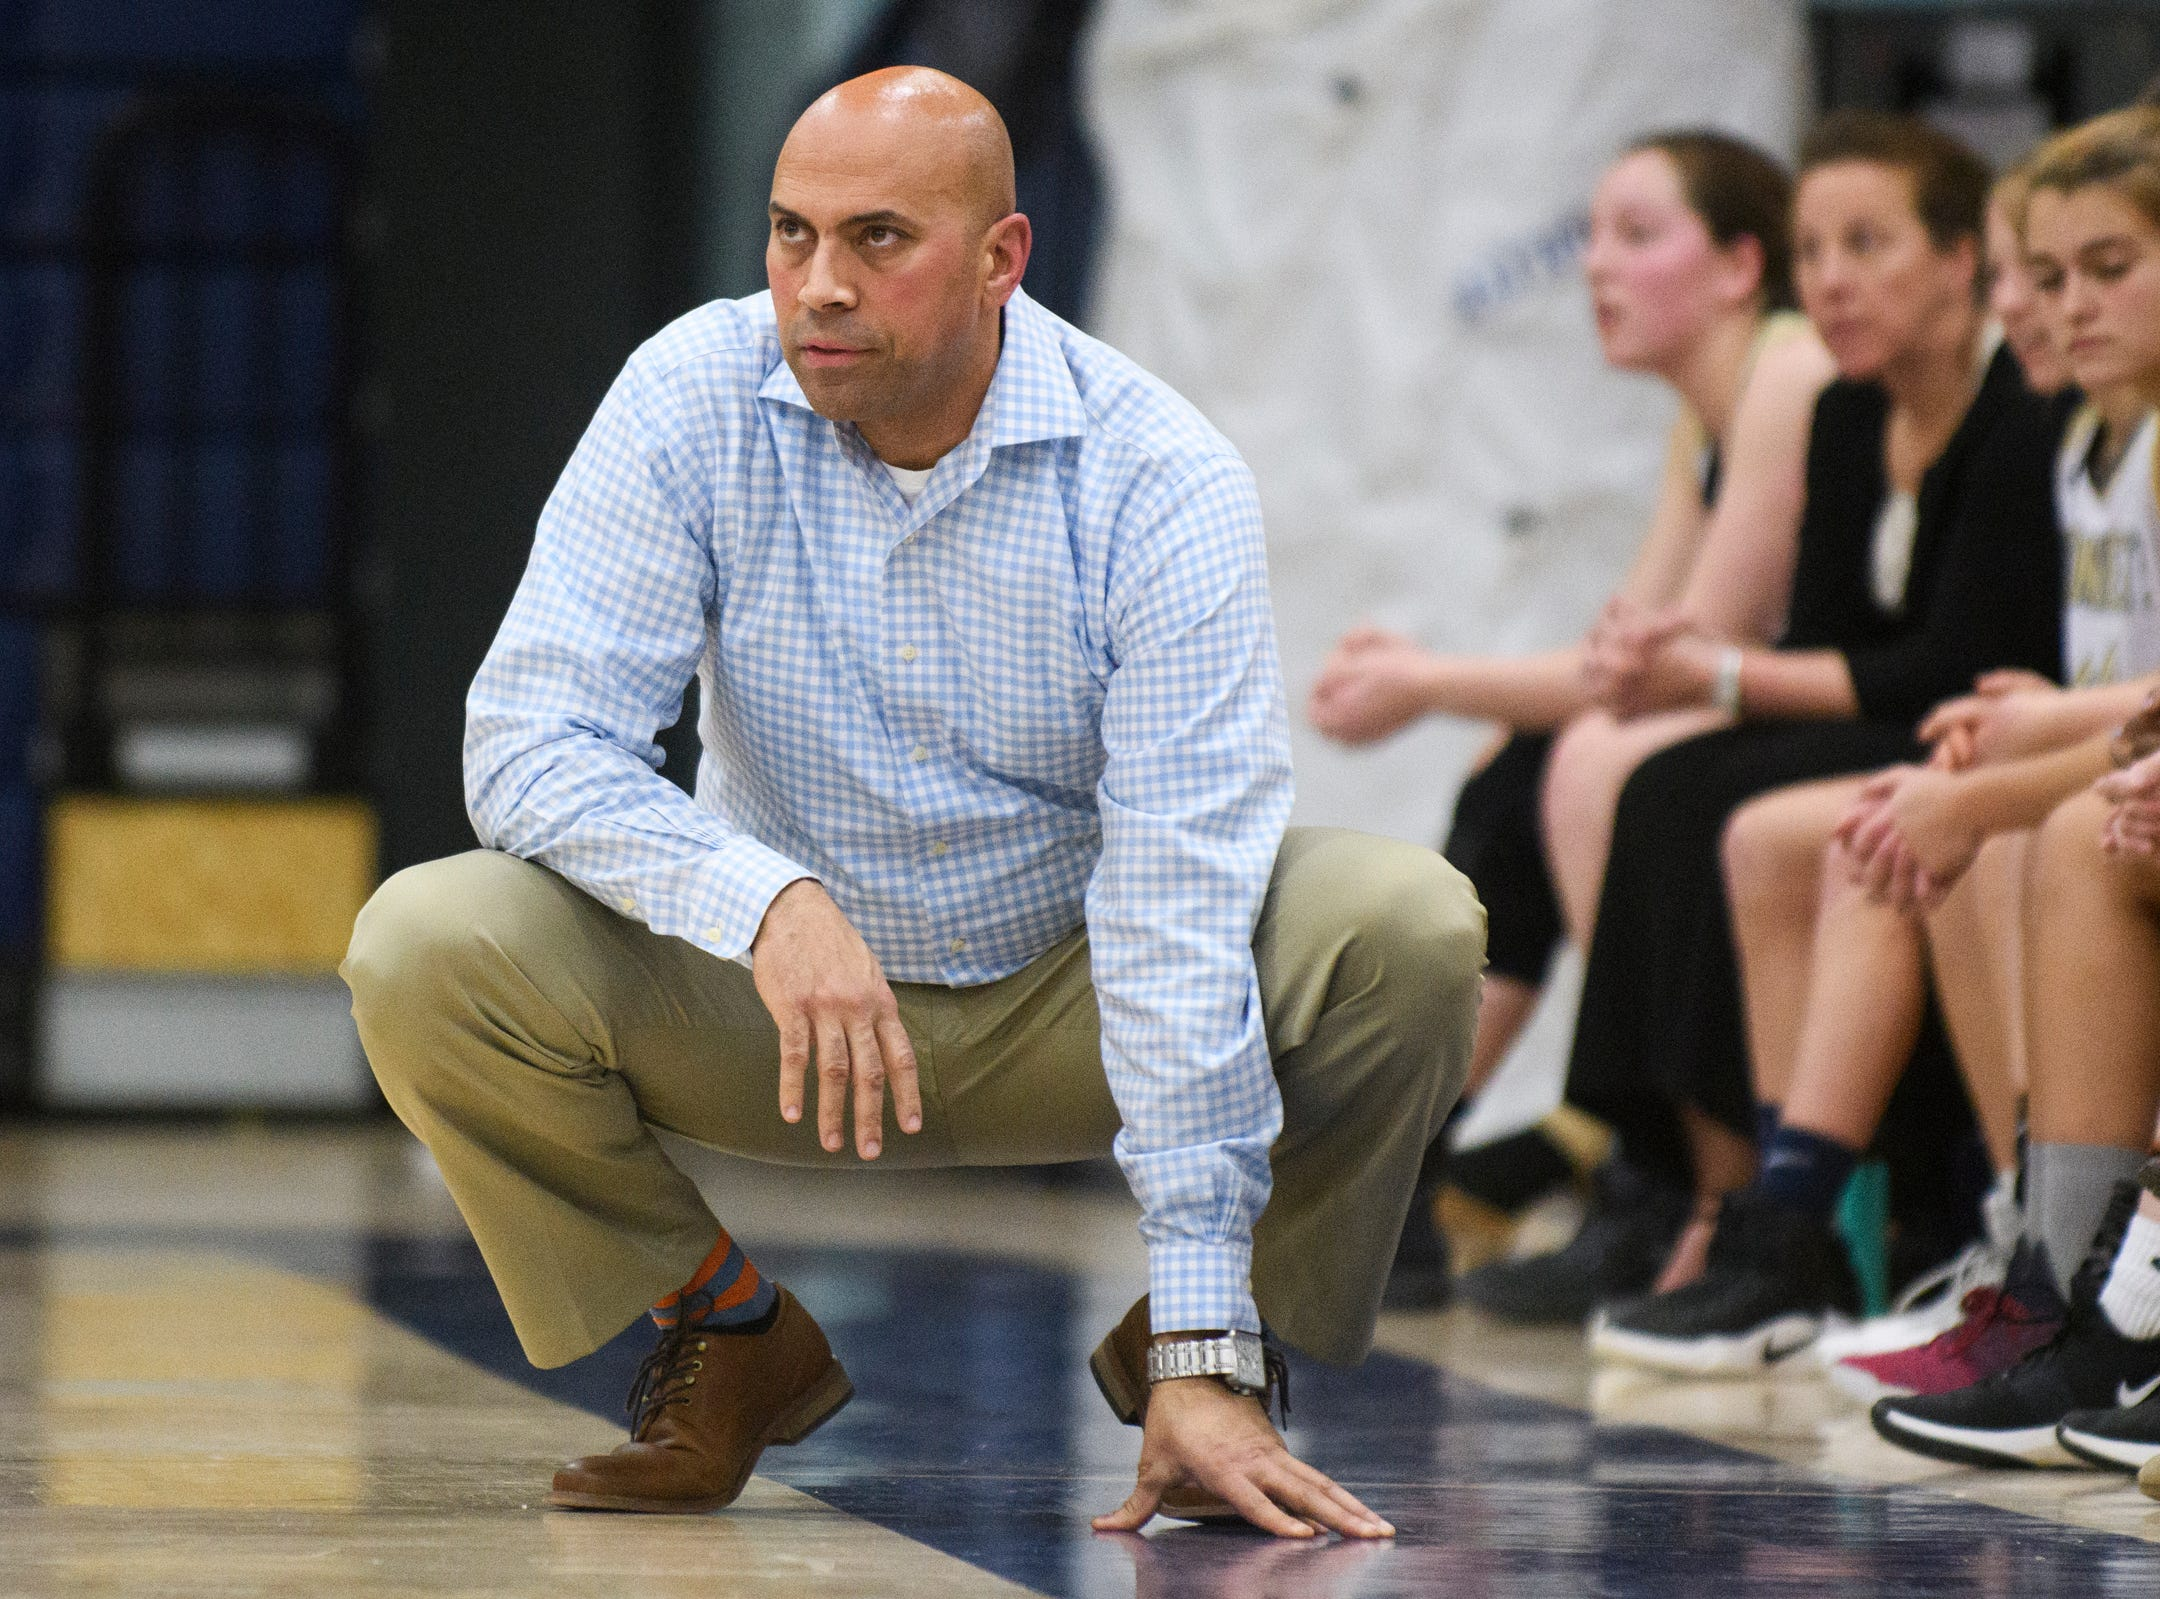 Essex head coach Shawn Montague watches the action on the court during the girls basketball game between the St. Johnsbury Hilltoppers and the Essex Hornets at Essex High School on Thursday night January 17, 2019 in Essex.